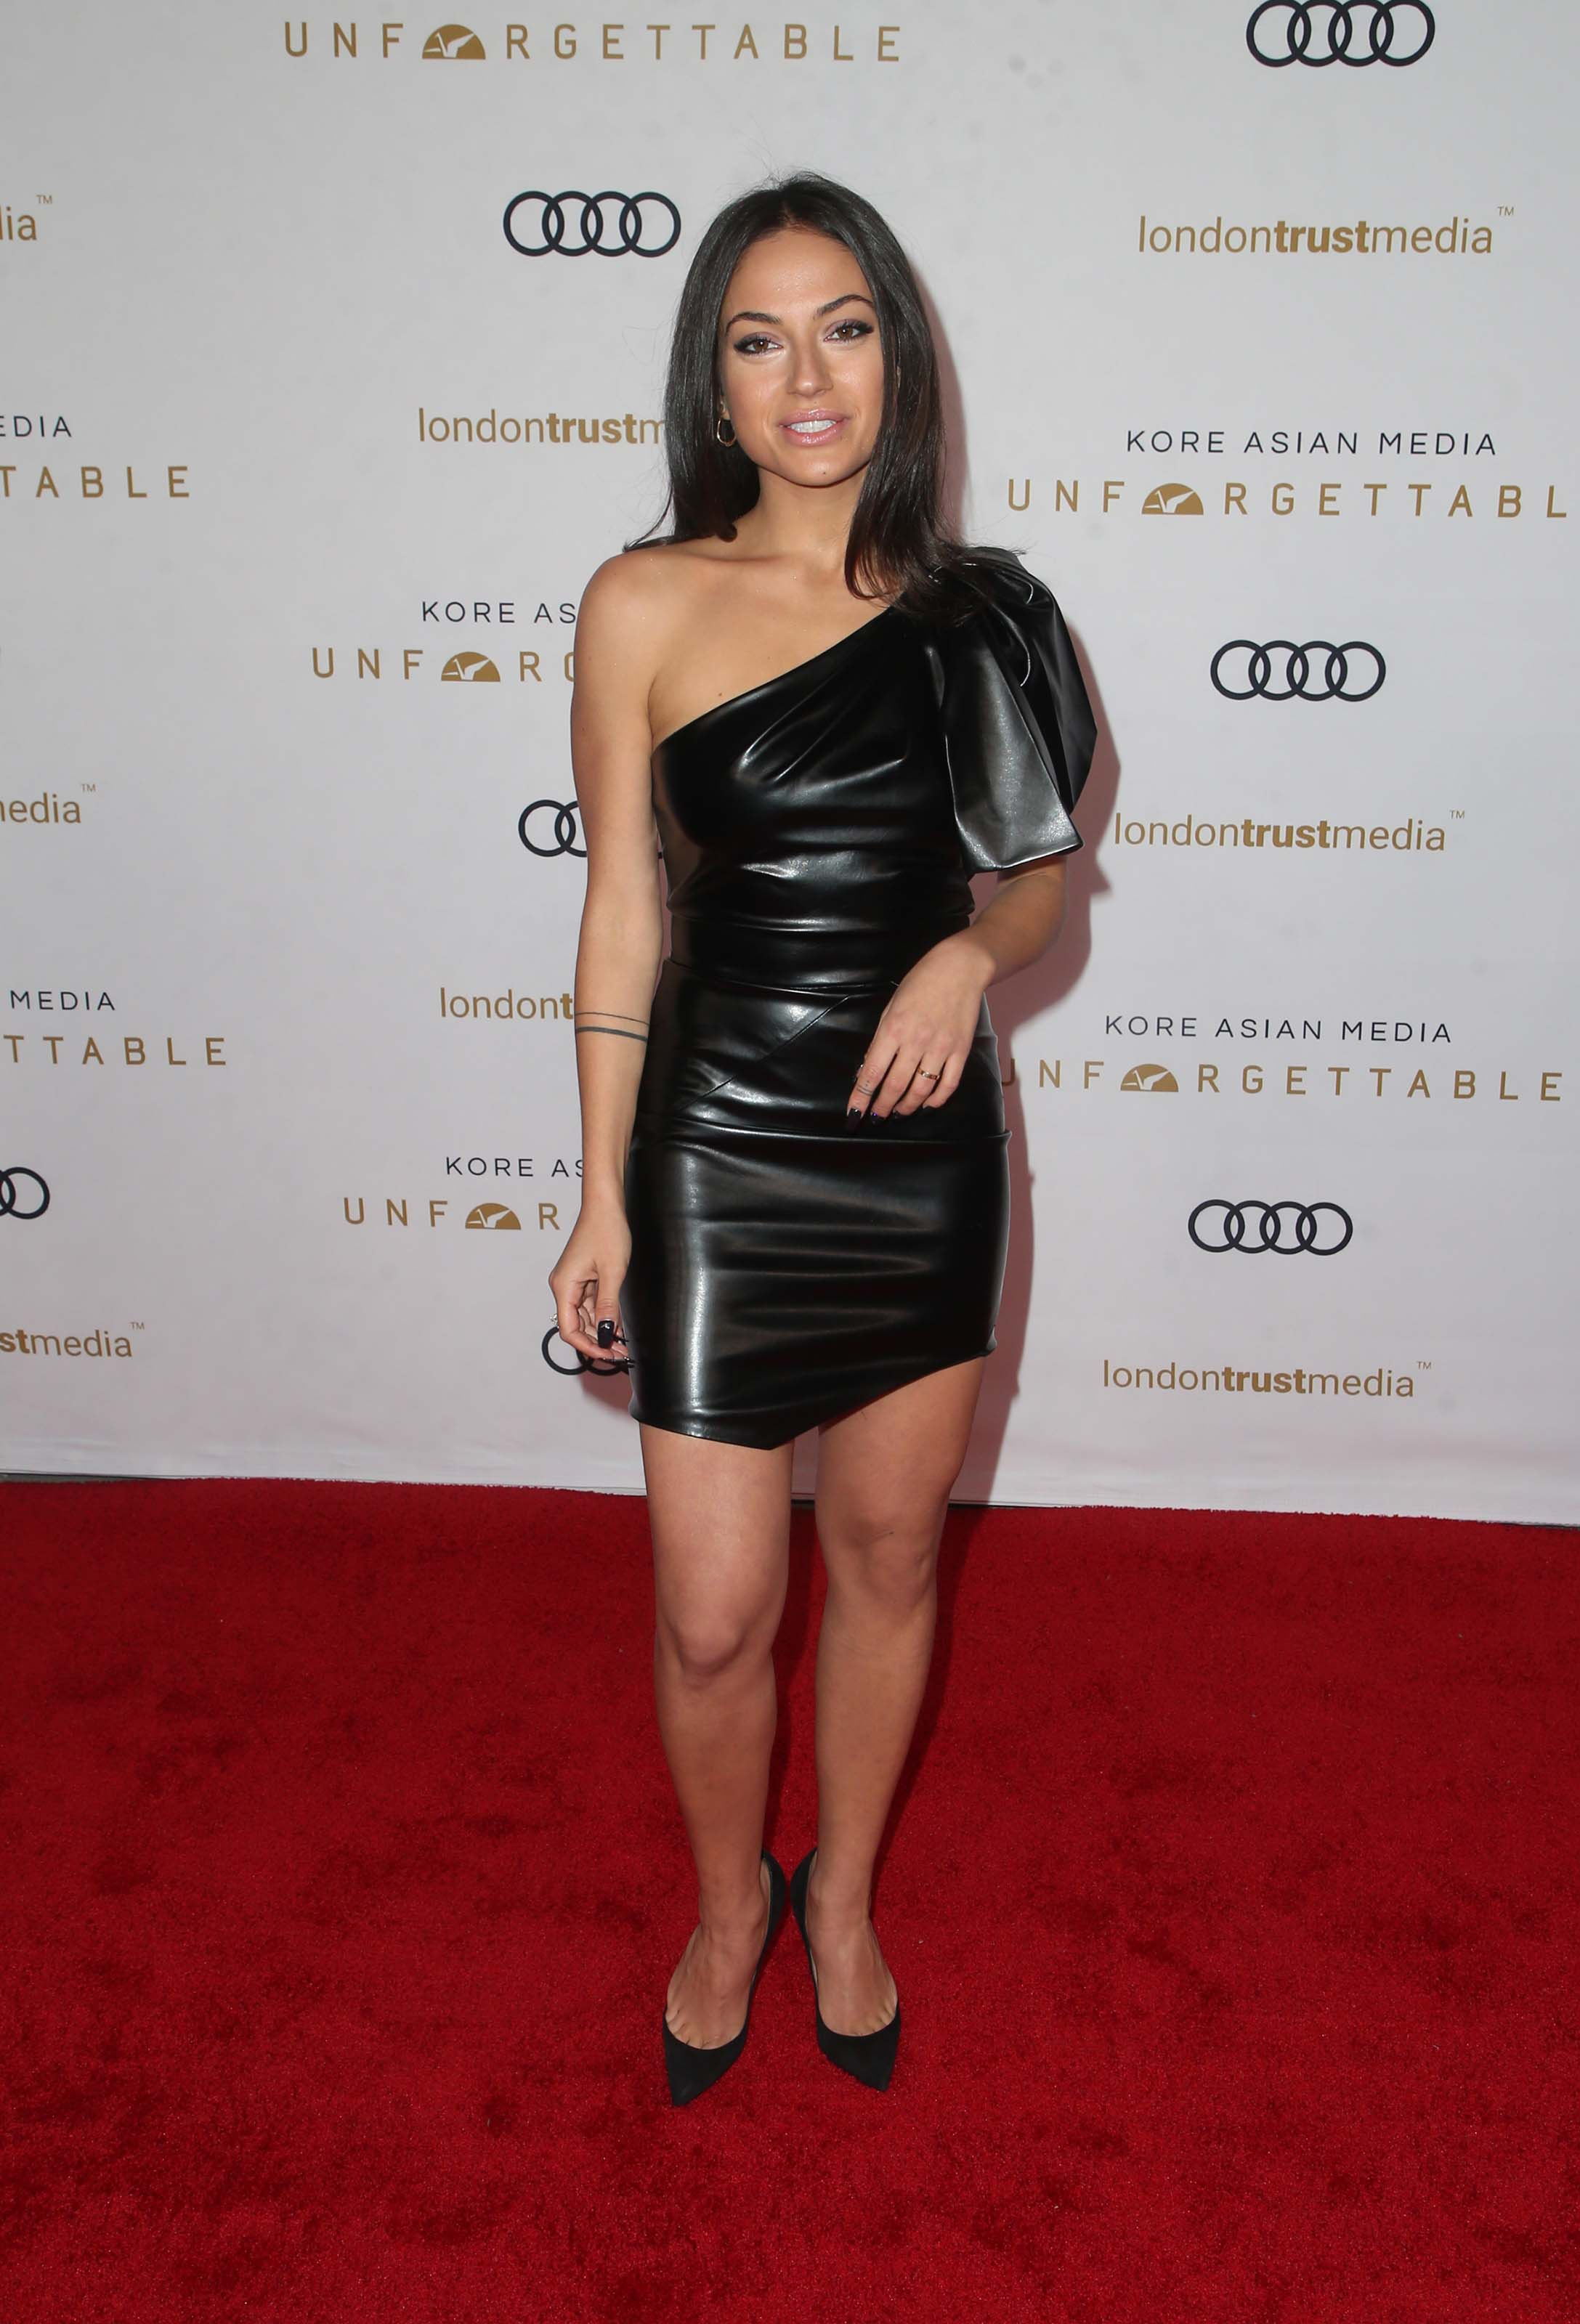 Inanna Sarkis attends Unforgettable Gala